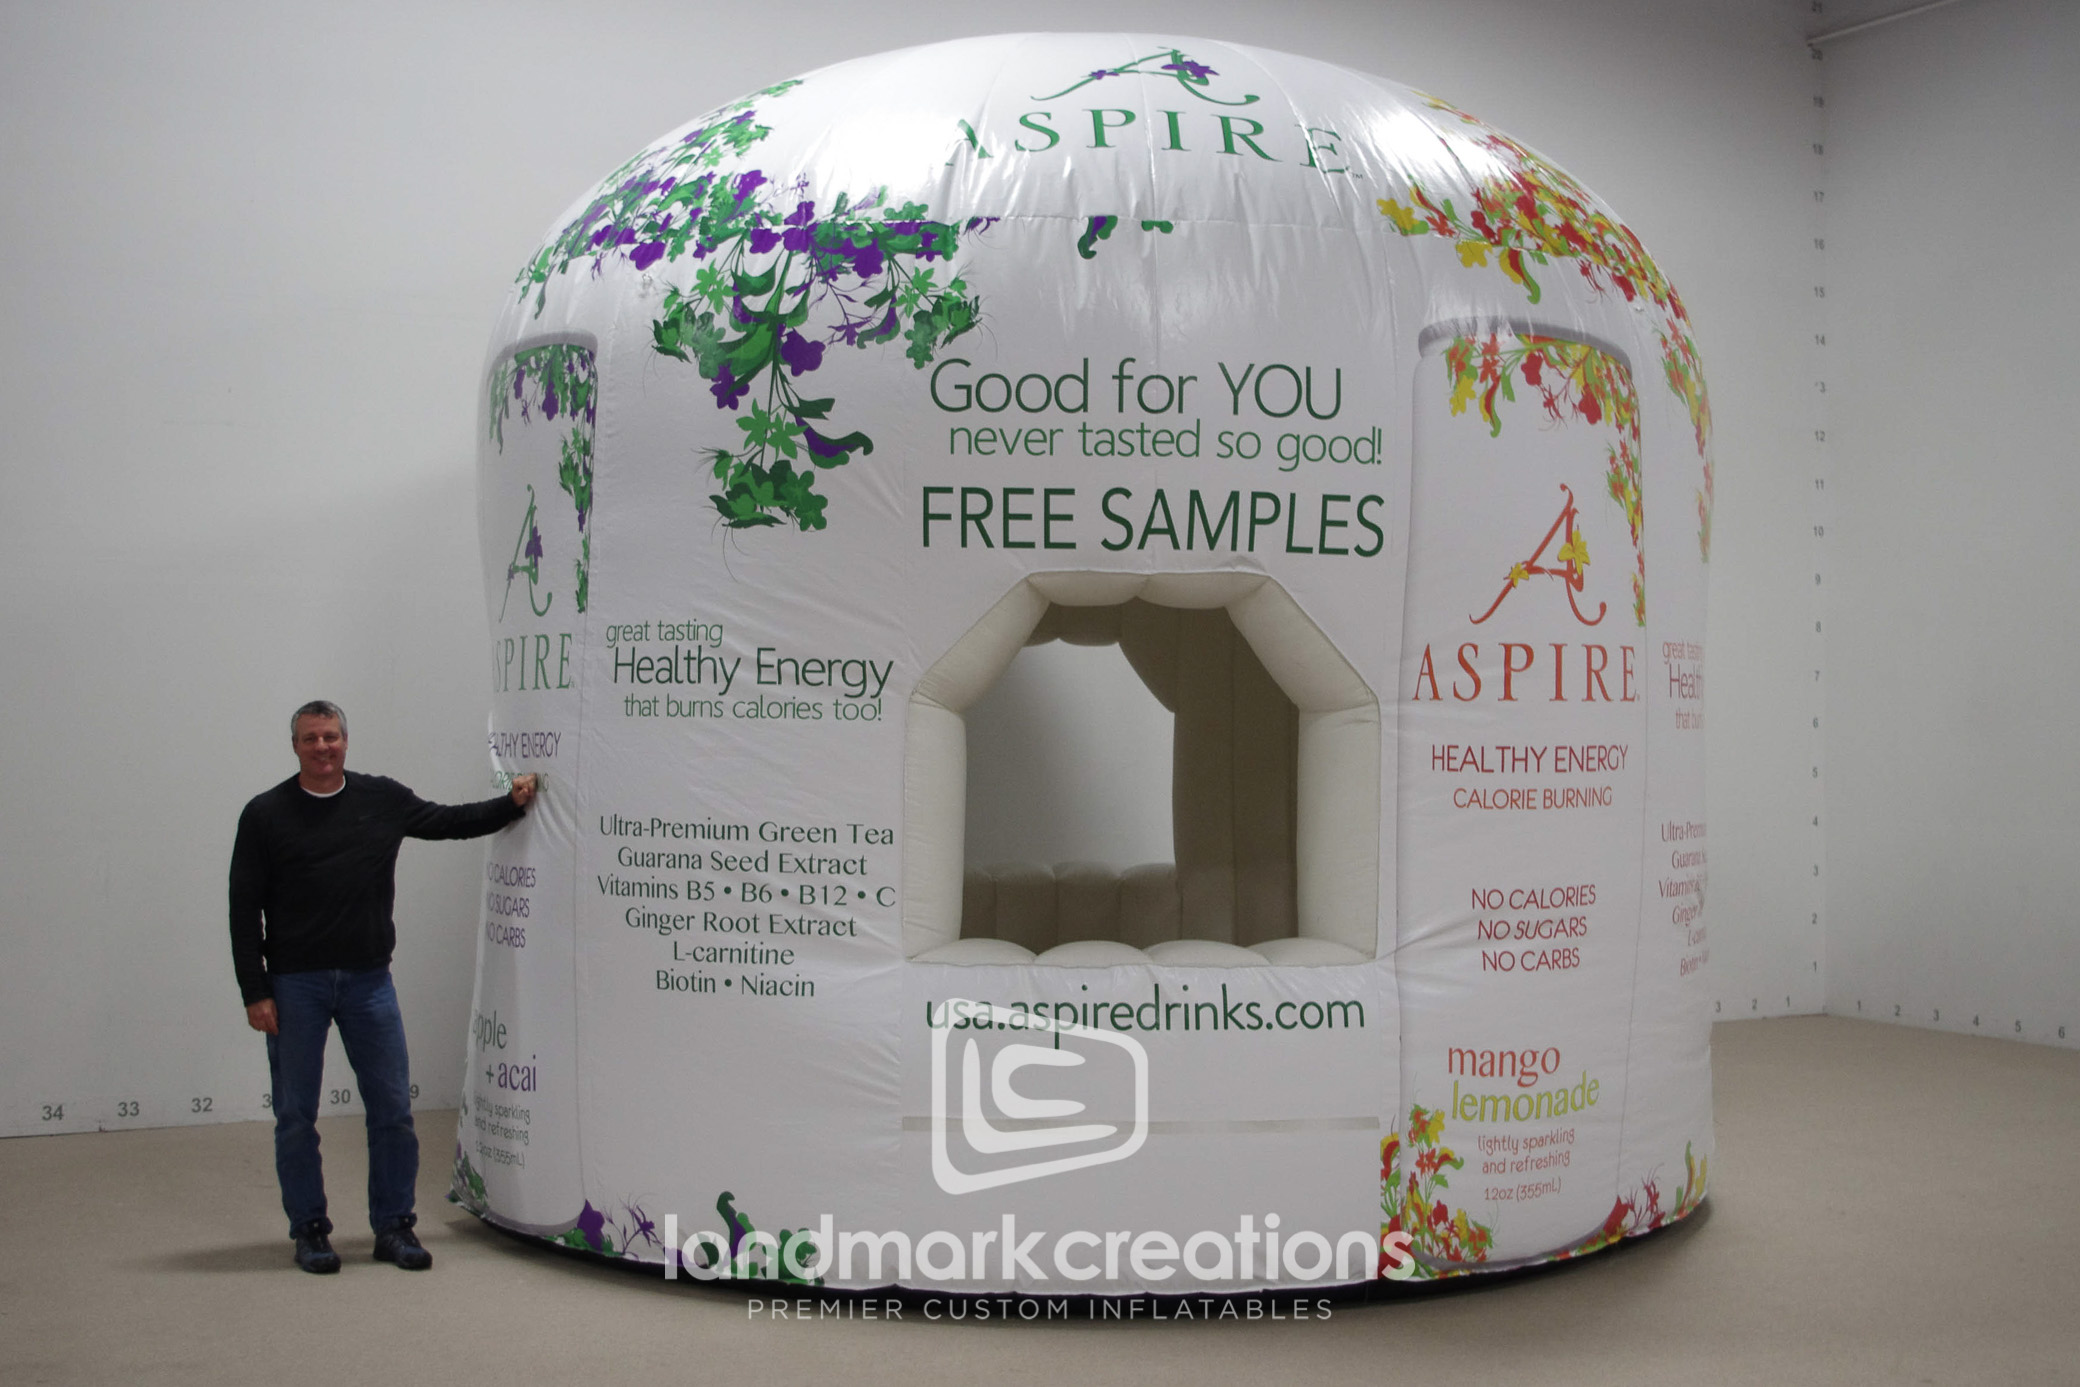 Aspire Sample Kiosk